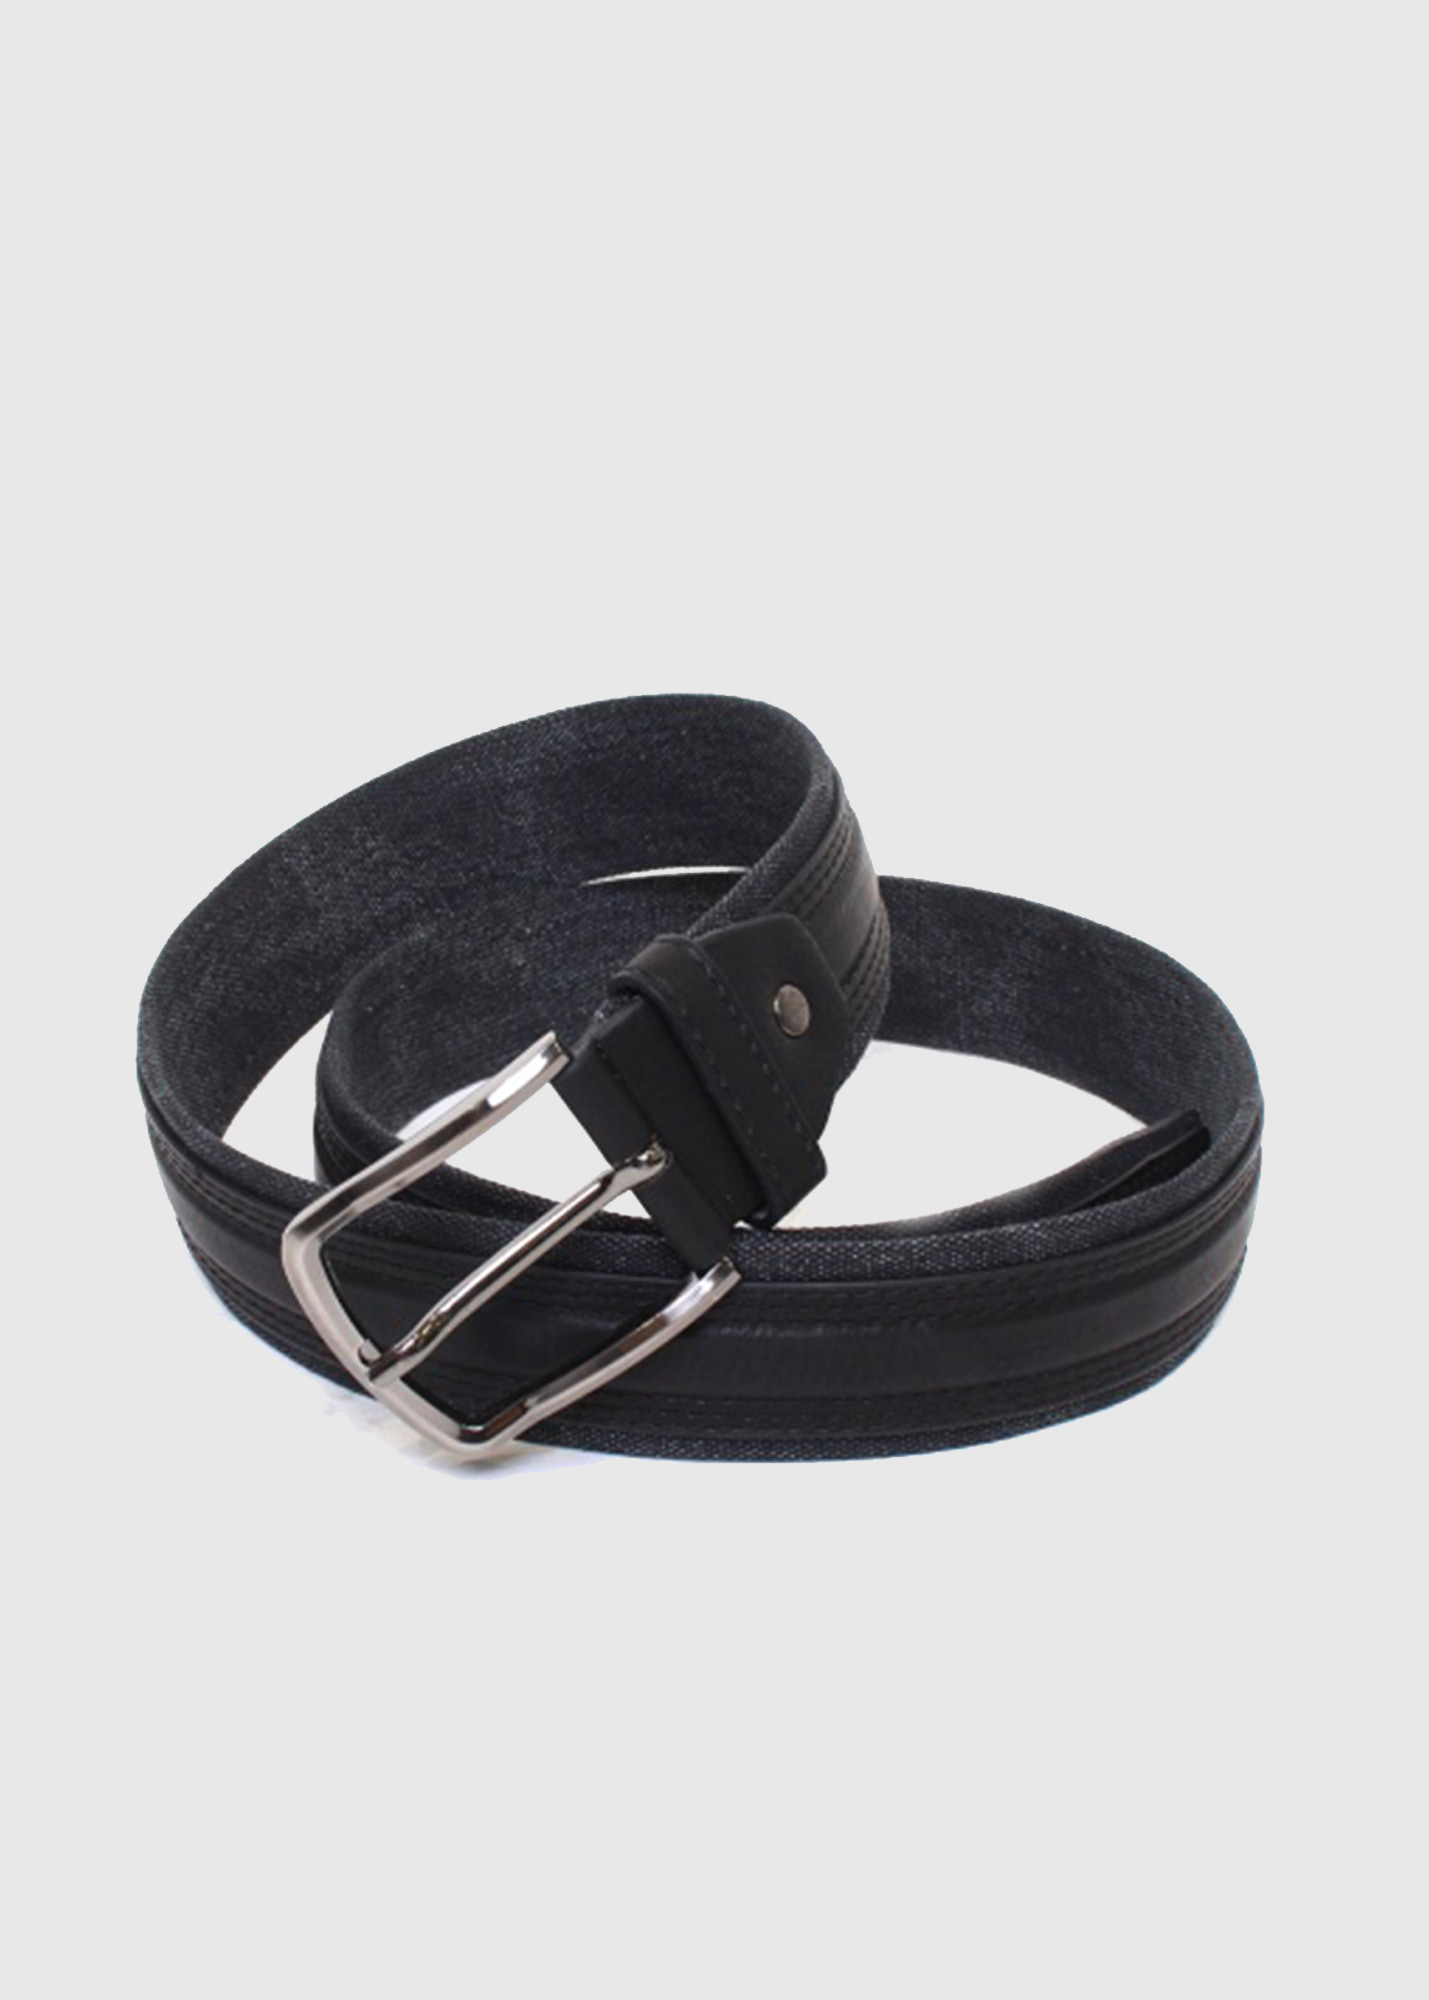 dcb8de307e8c Manzu black leather belt with metal buckle - Clothing store KOKOS